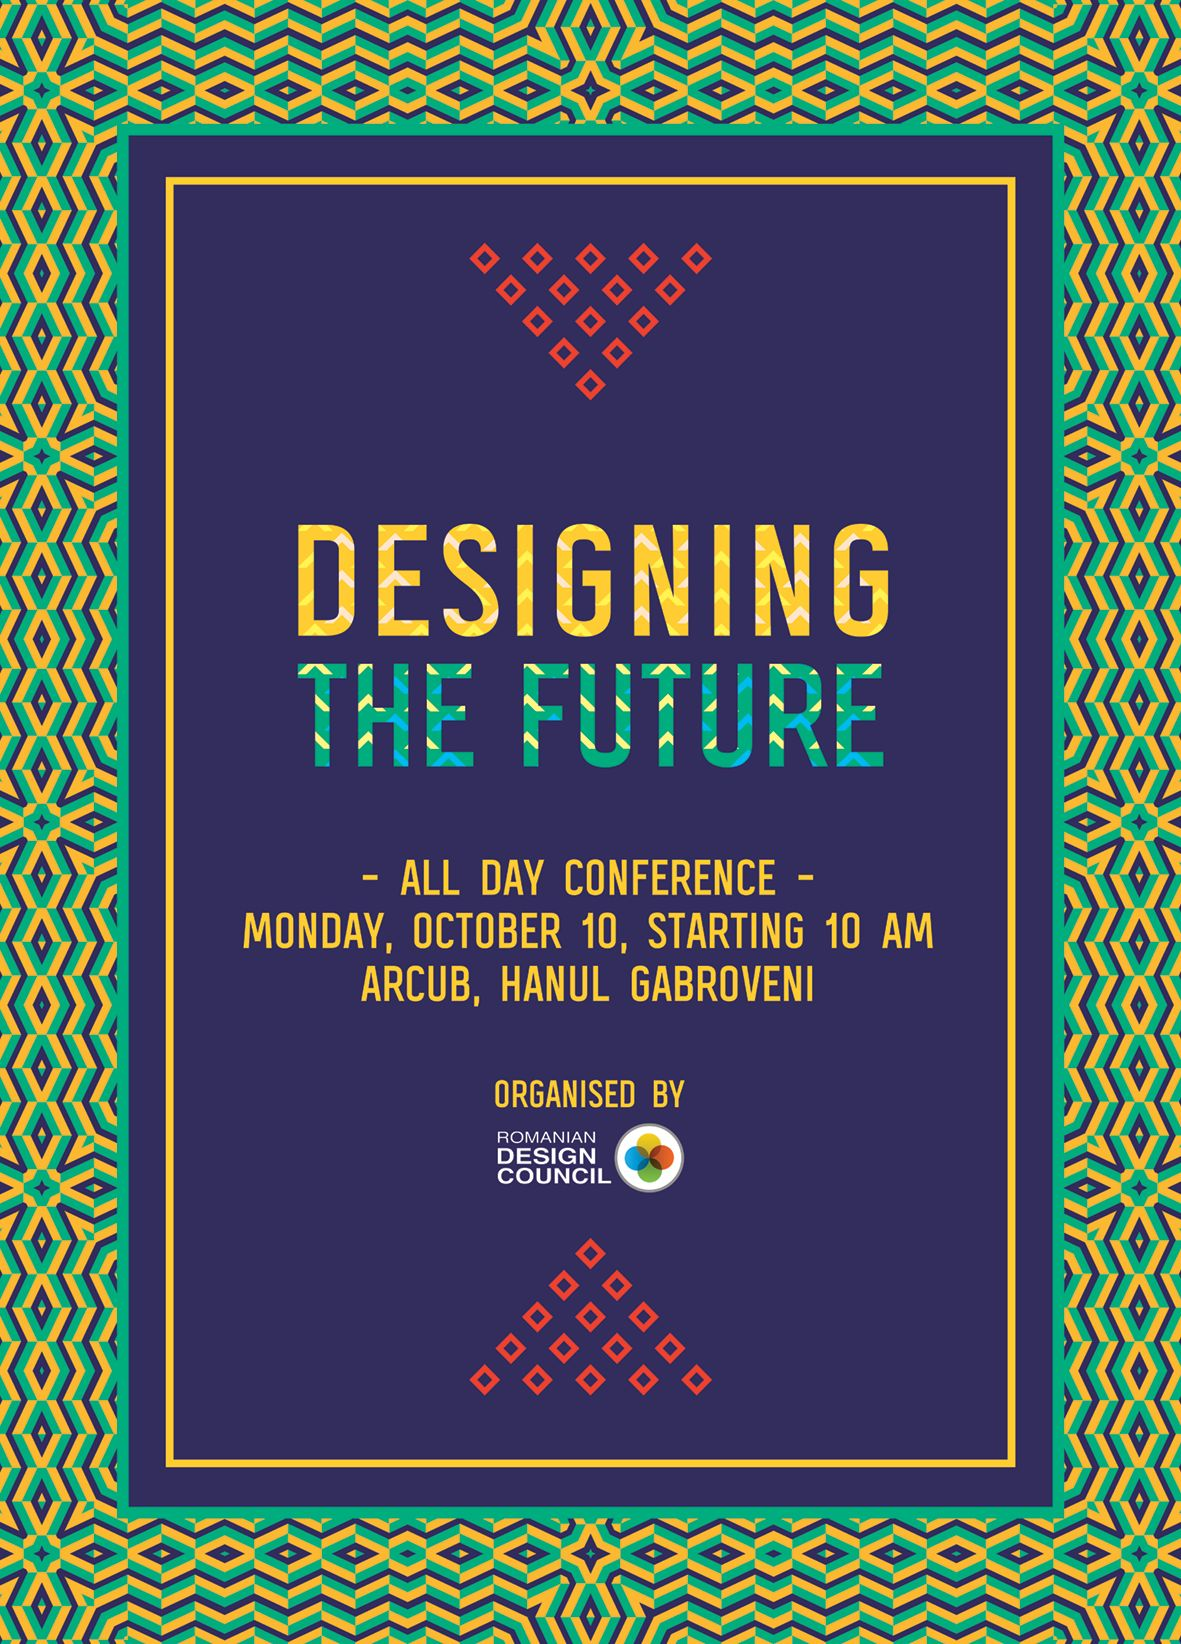 Designing The Future Conference, Romanian Design Council: Monday, October 10